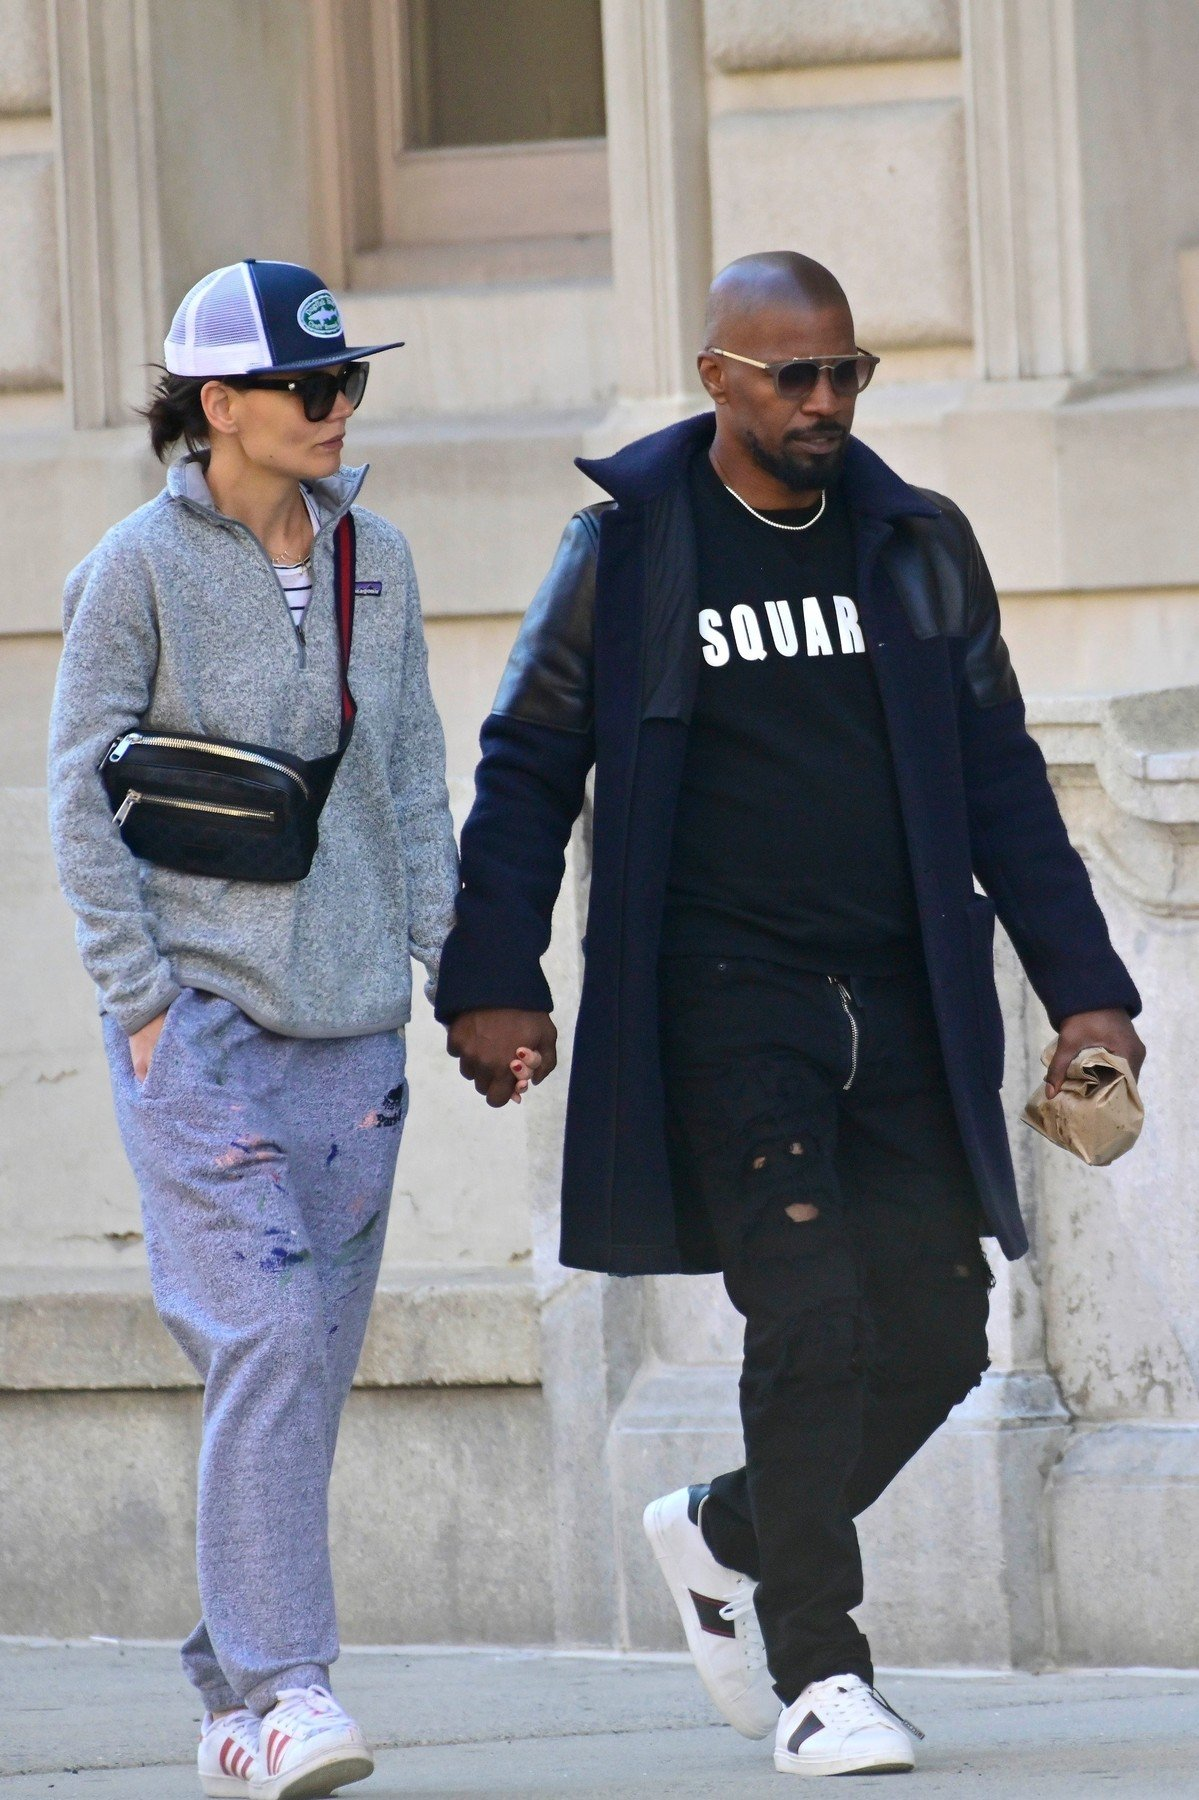 ** RIGHTS: WORLDWIDE EXCEPT IN FRANCE, GERMANY, POLAND ** New York, NY  - *EXCLUSIVE*  - Katie Holmes and Jamie Foxx show their love for each other as they hold hands after brunch. The duo are seen heading to Katie's apartment.  Pictured: Jamie Foxx, Katie Holmes  BACKGRID USA 16 APRIL 2019, Image: 426442956, License: Rights-managed, Restrictions: , Model Release: no, Credit line: Profimedia, Backgrid USA